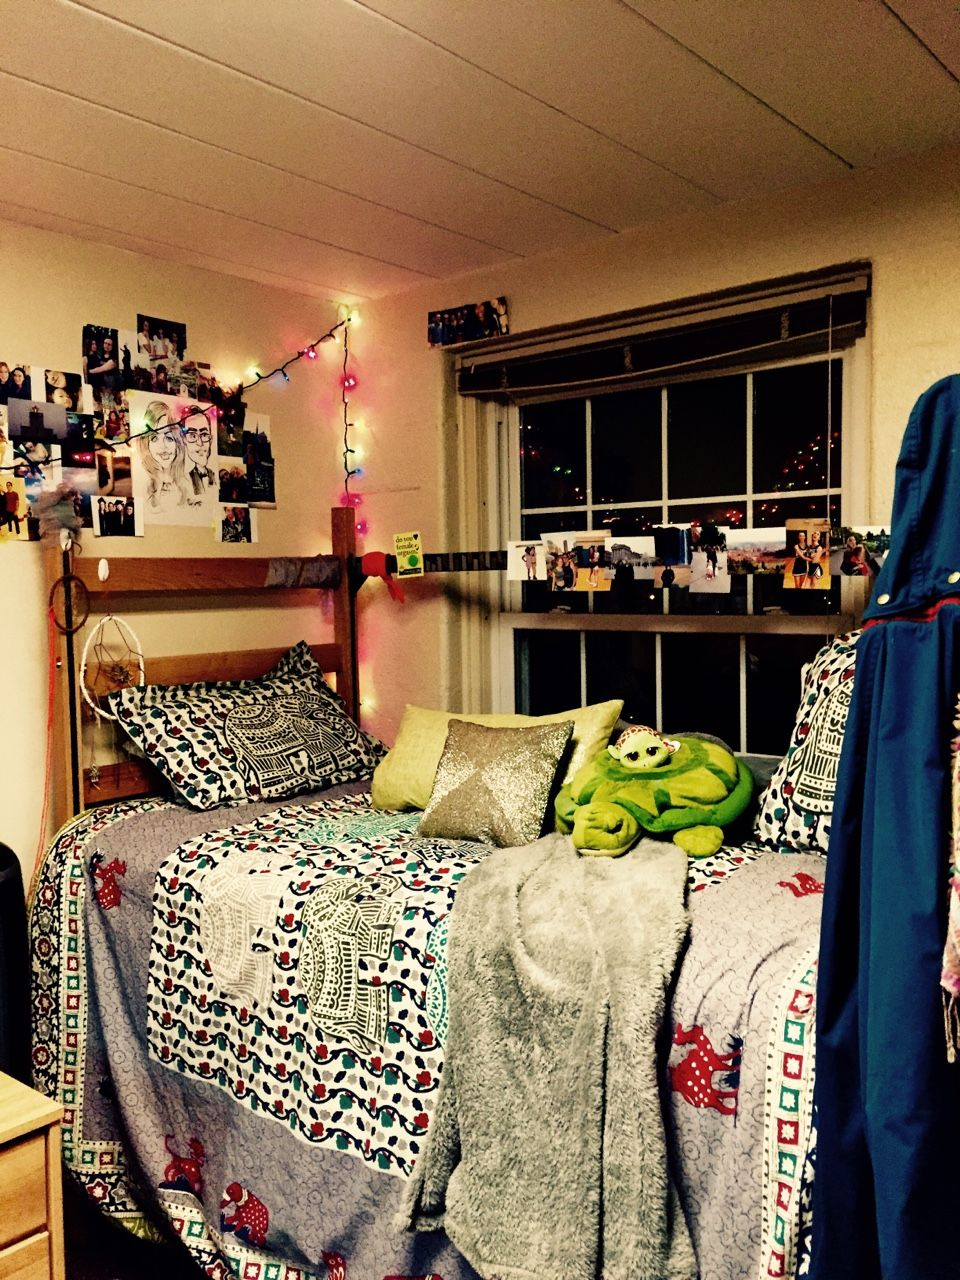 Denison University, Hard To Believe Iu0027ll Be Staying Here(not Exact Dorm Part 3